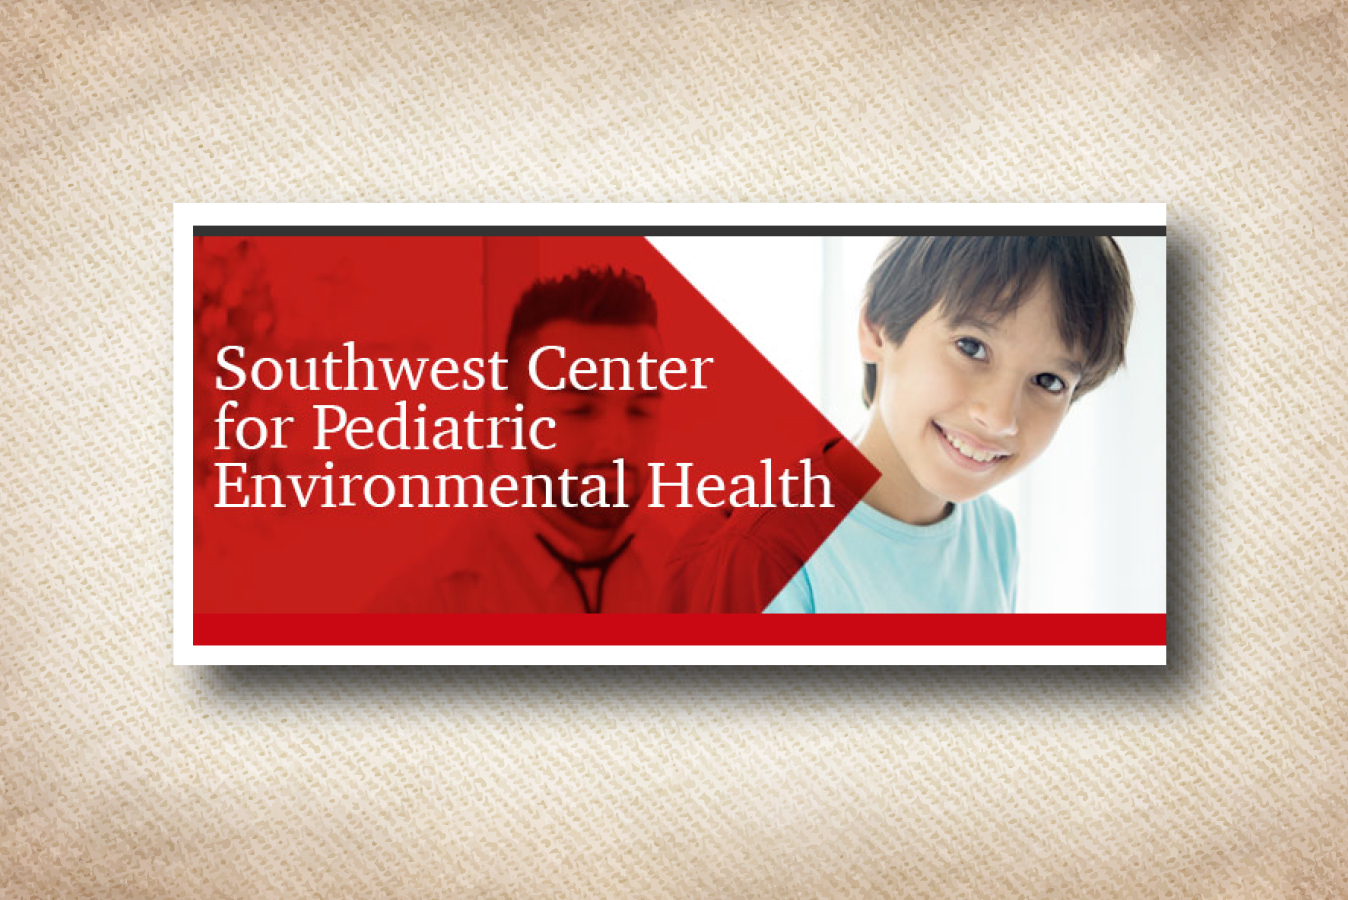 Southwest Center for Pediatric Environmental Health Website Serves Families